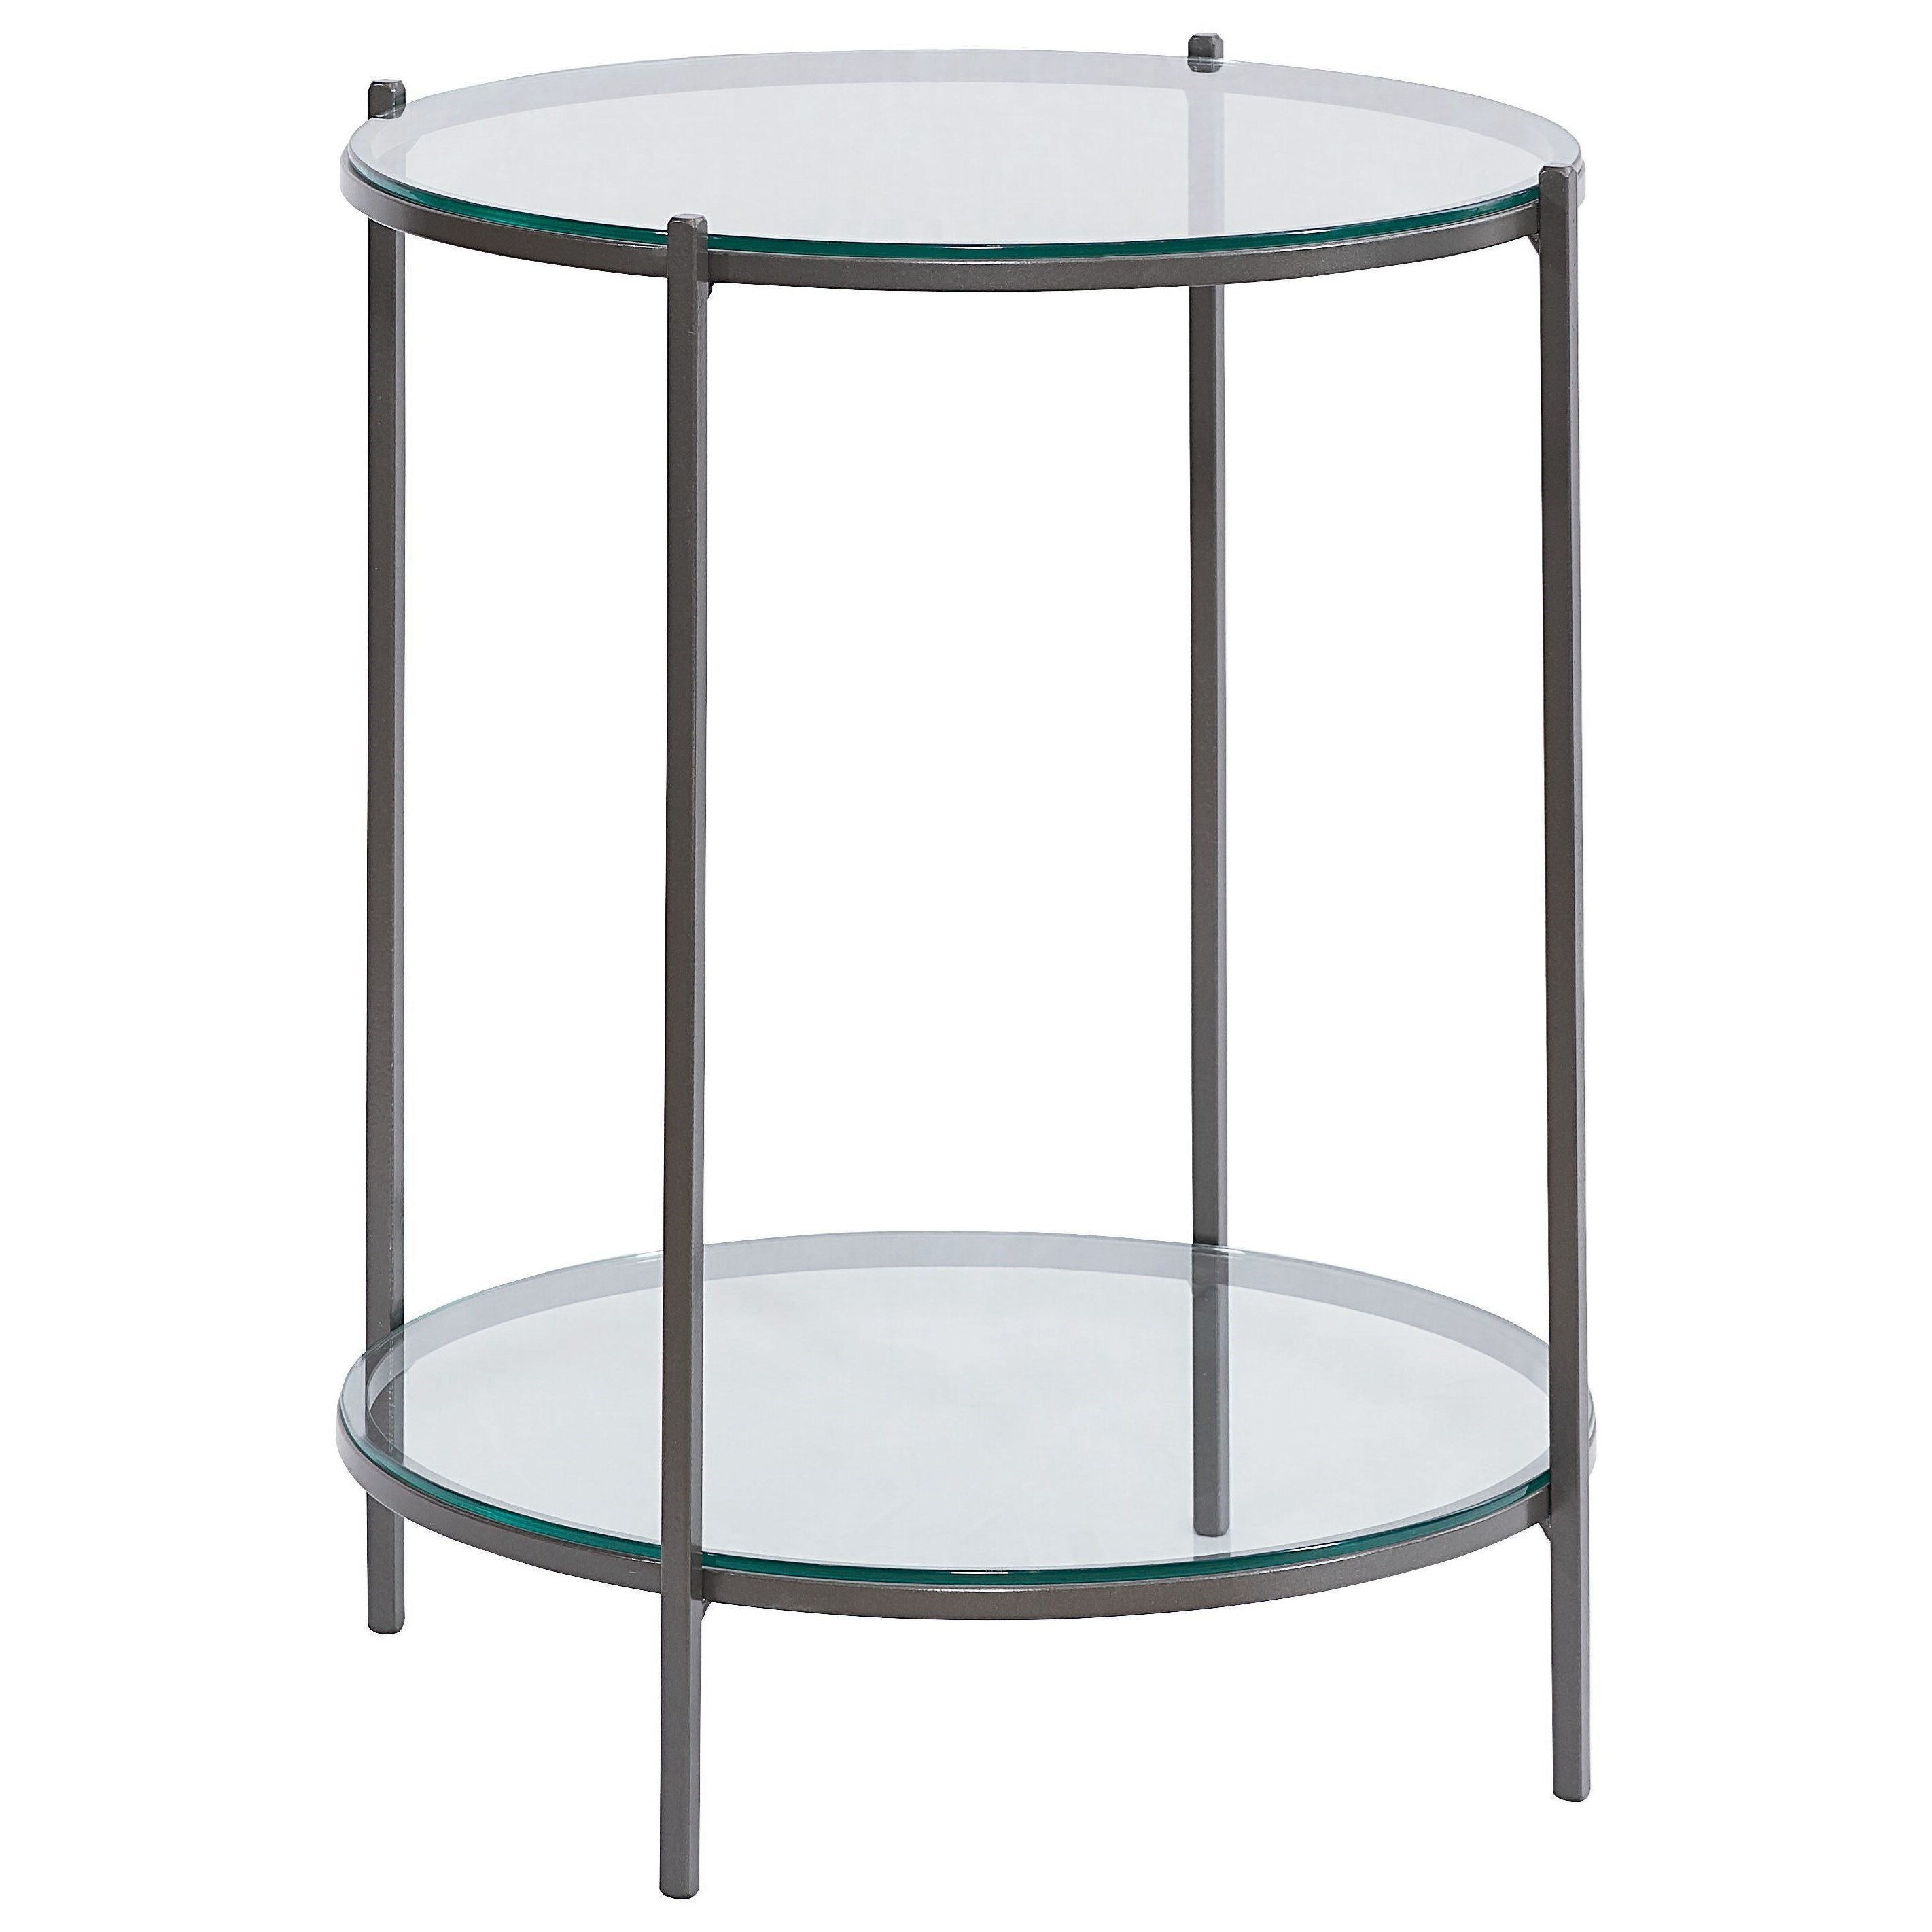 Linville End Table by Bassett at Bassett of Cool Springs